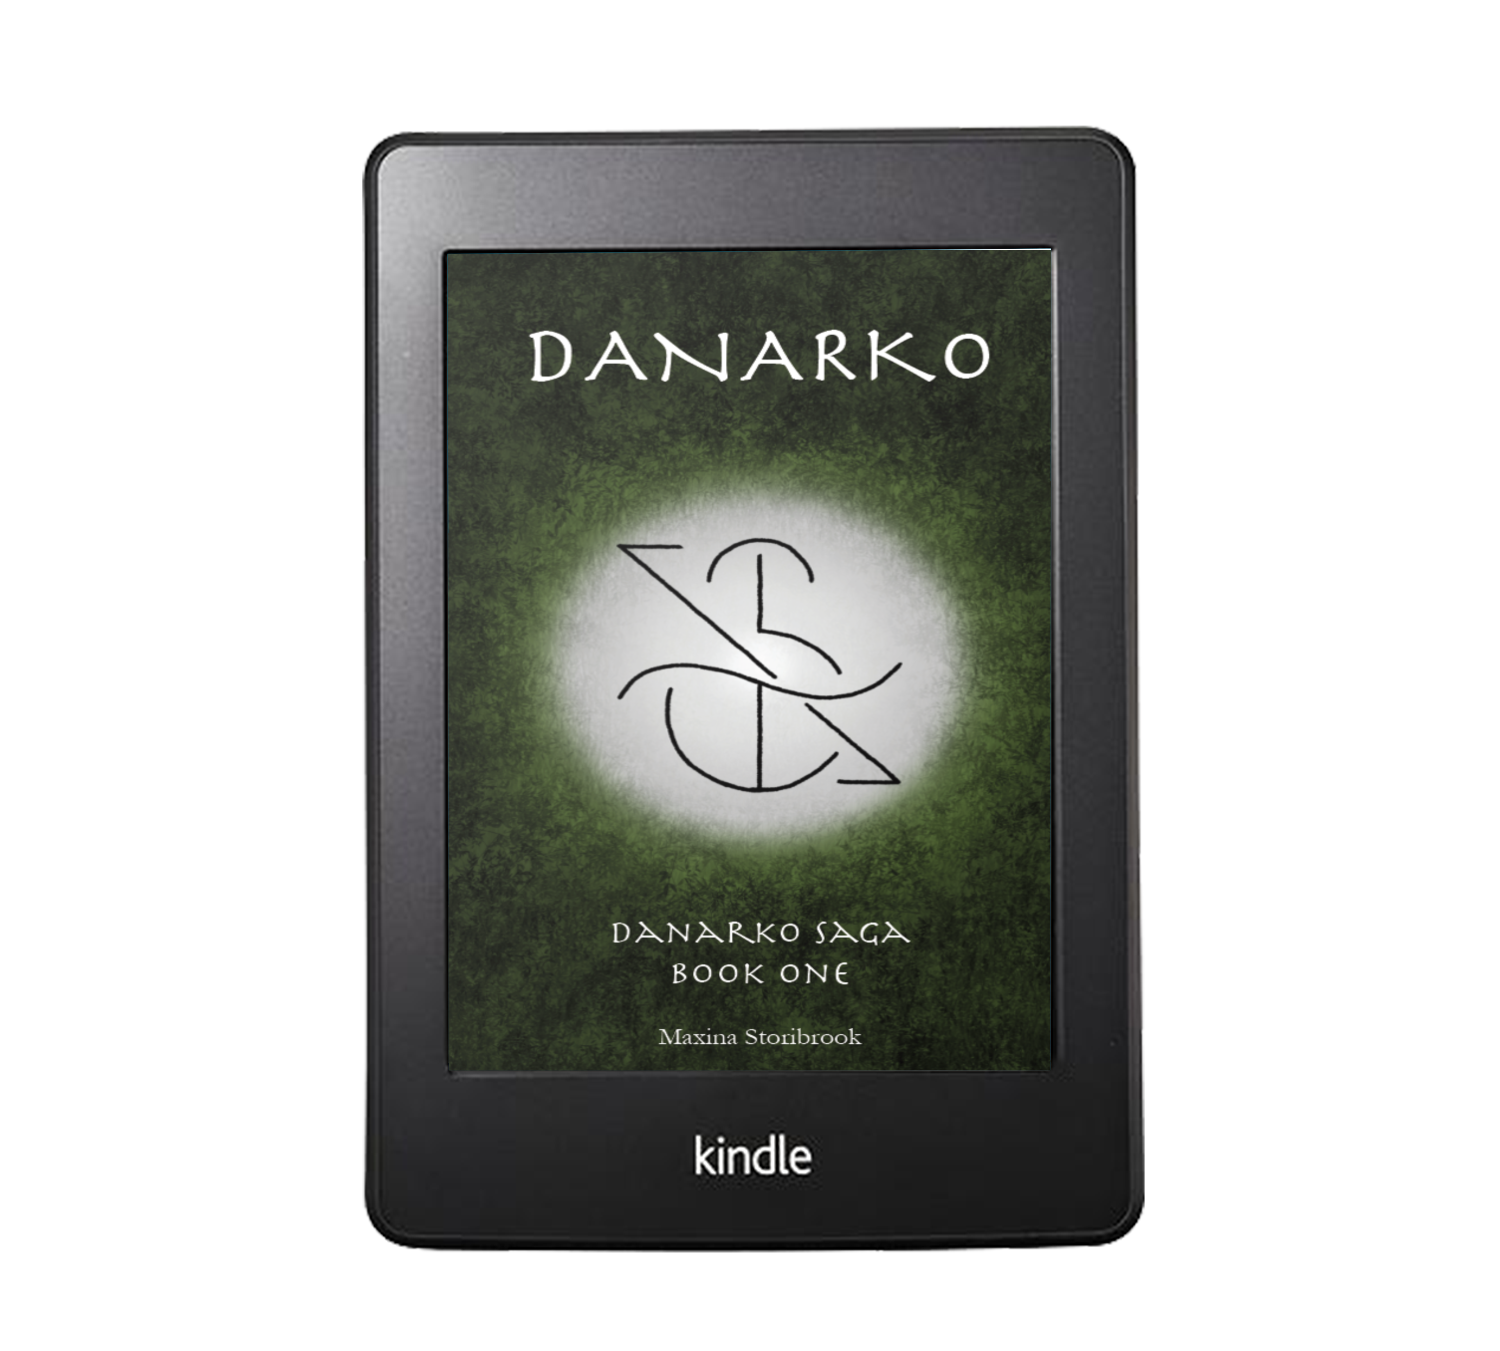 Danarko: Danarko Saga, Book One (Ebook & Audiobook Options)